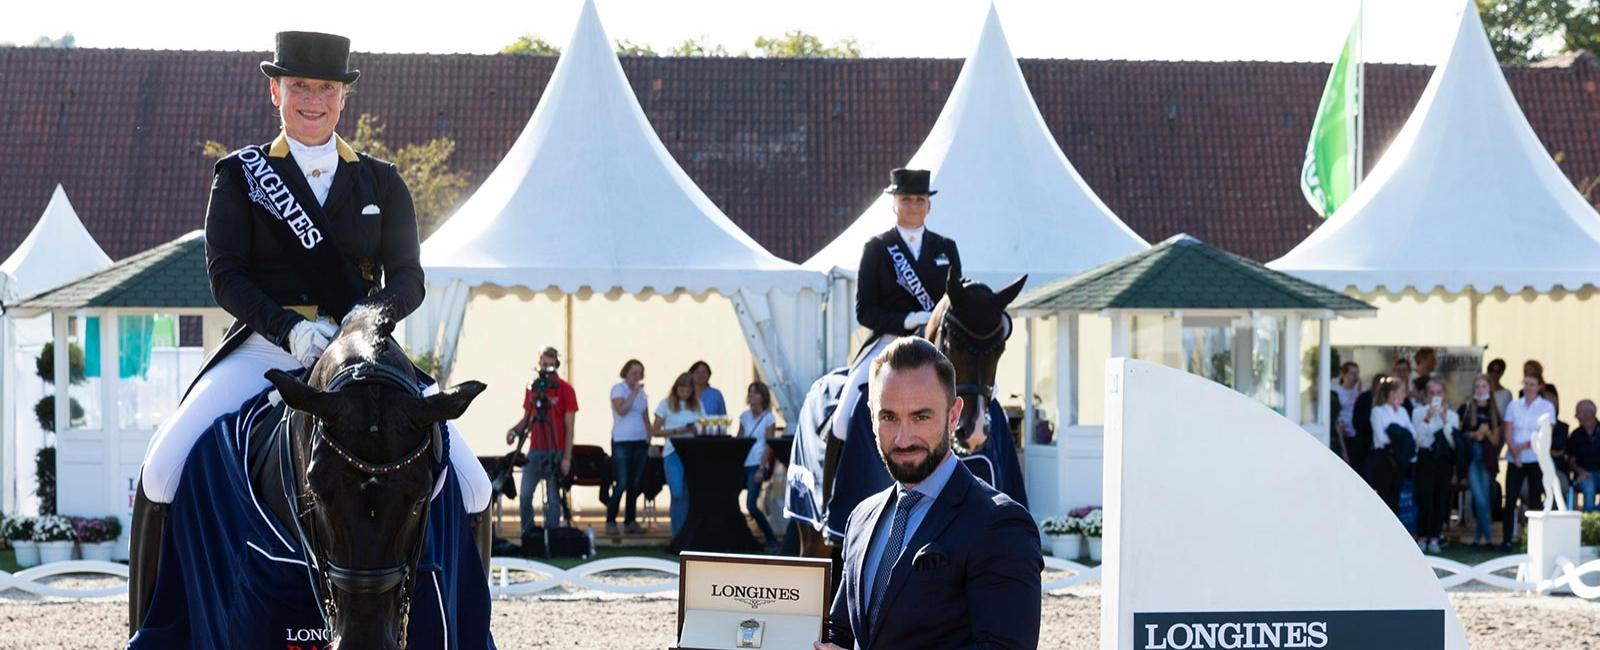 Compétitions de dressage ; Longines Balve Optimum 2020